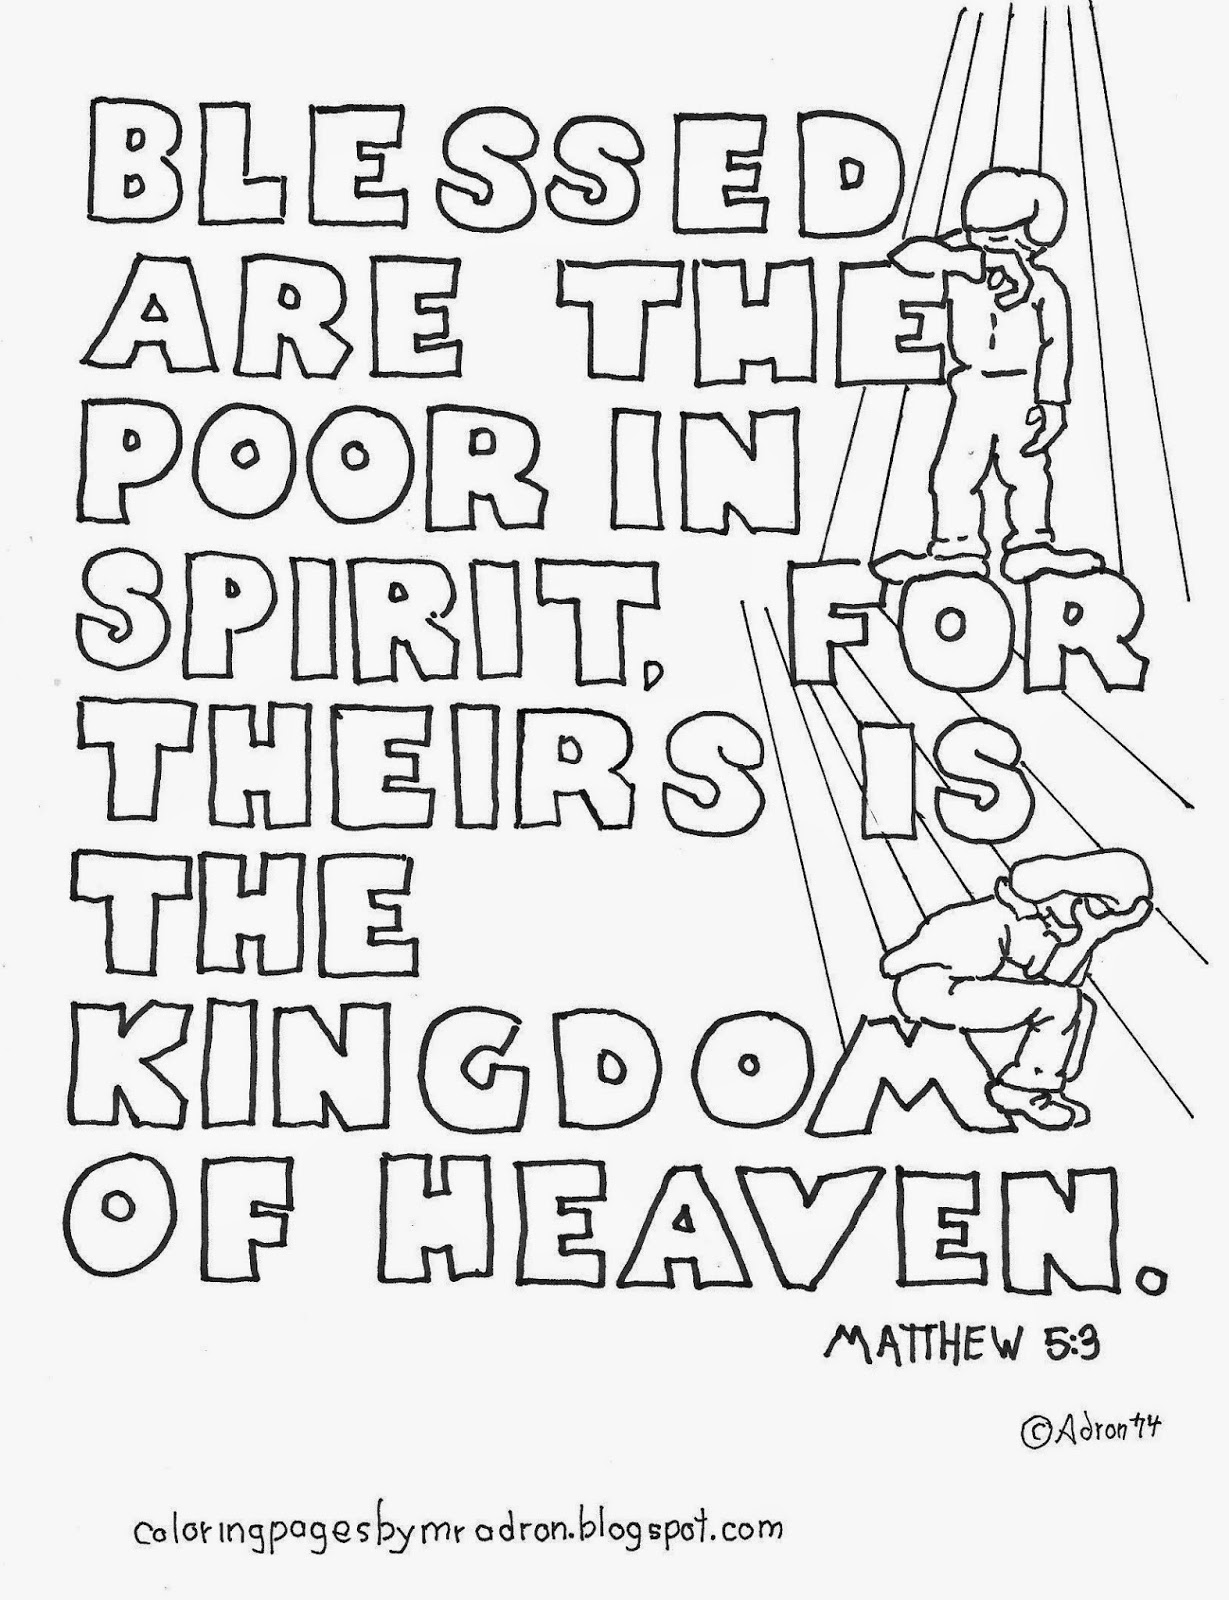 An illustration for Matthew 5:3 to print and color.